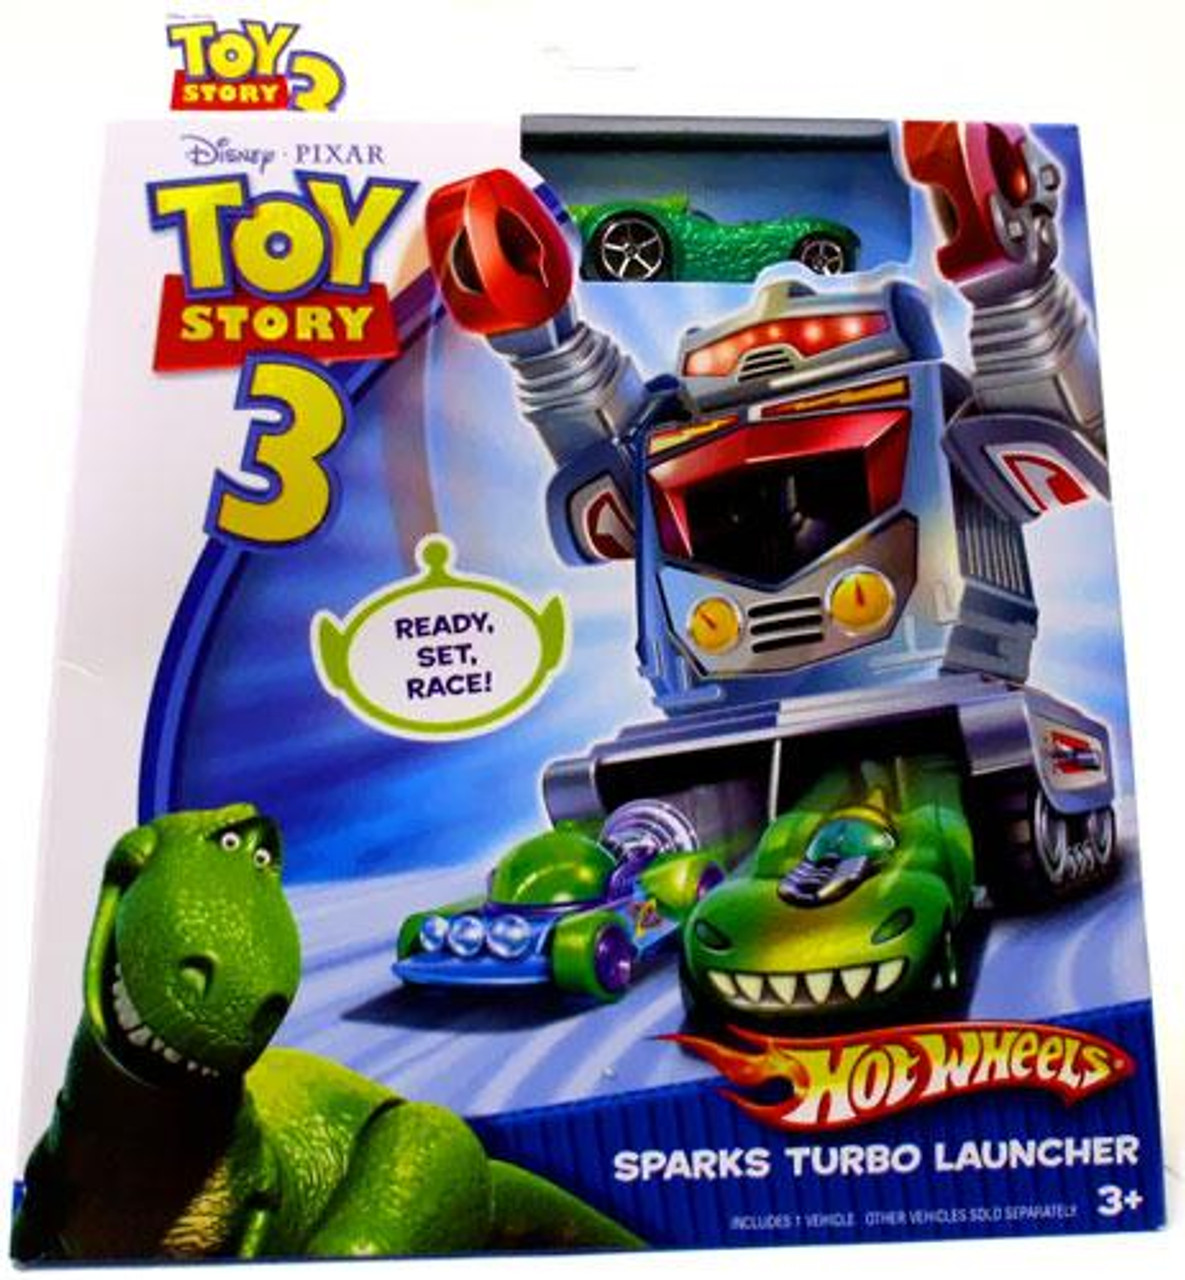 Toy Story 3 Hot Wheels Sparks Turbo Launcher Diecast Vehicle Playset